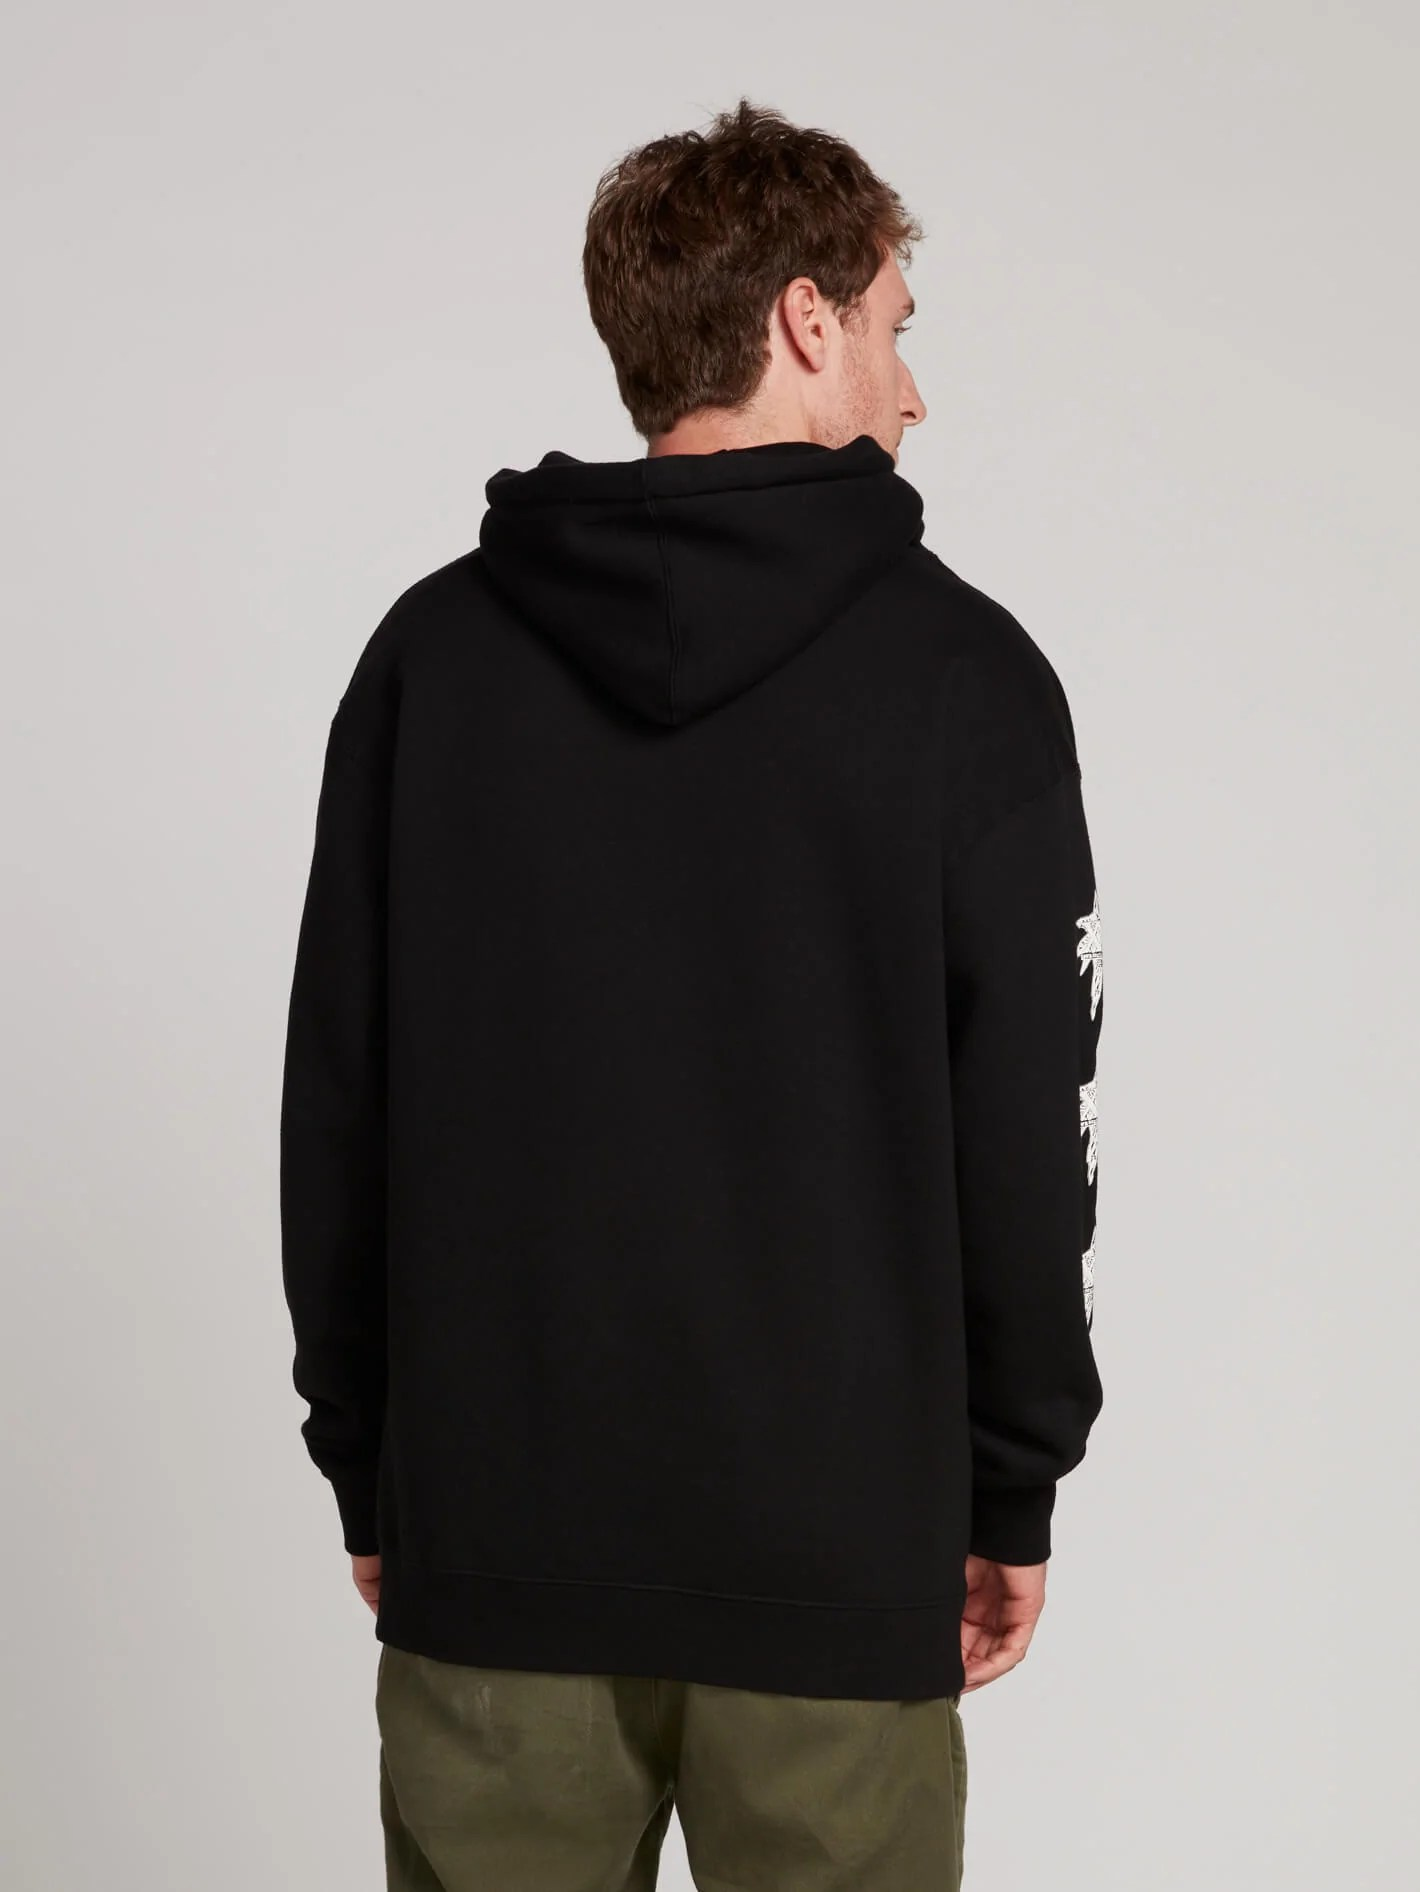 Pullover Jungs Men S Hoodies Sweatshirts Pullover Zip Up Crew Volcom